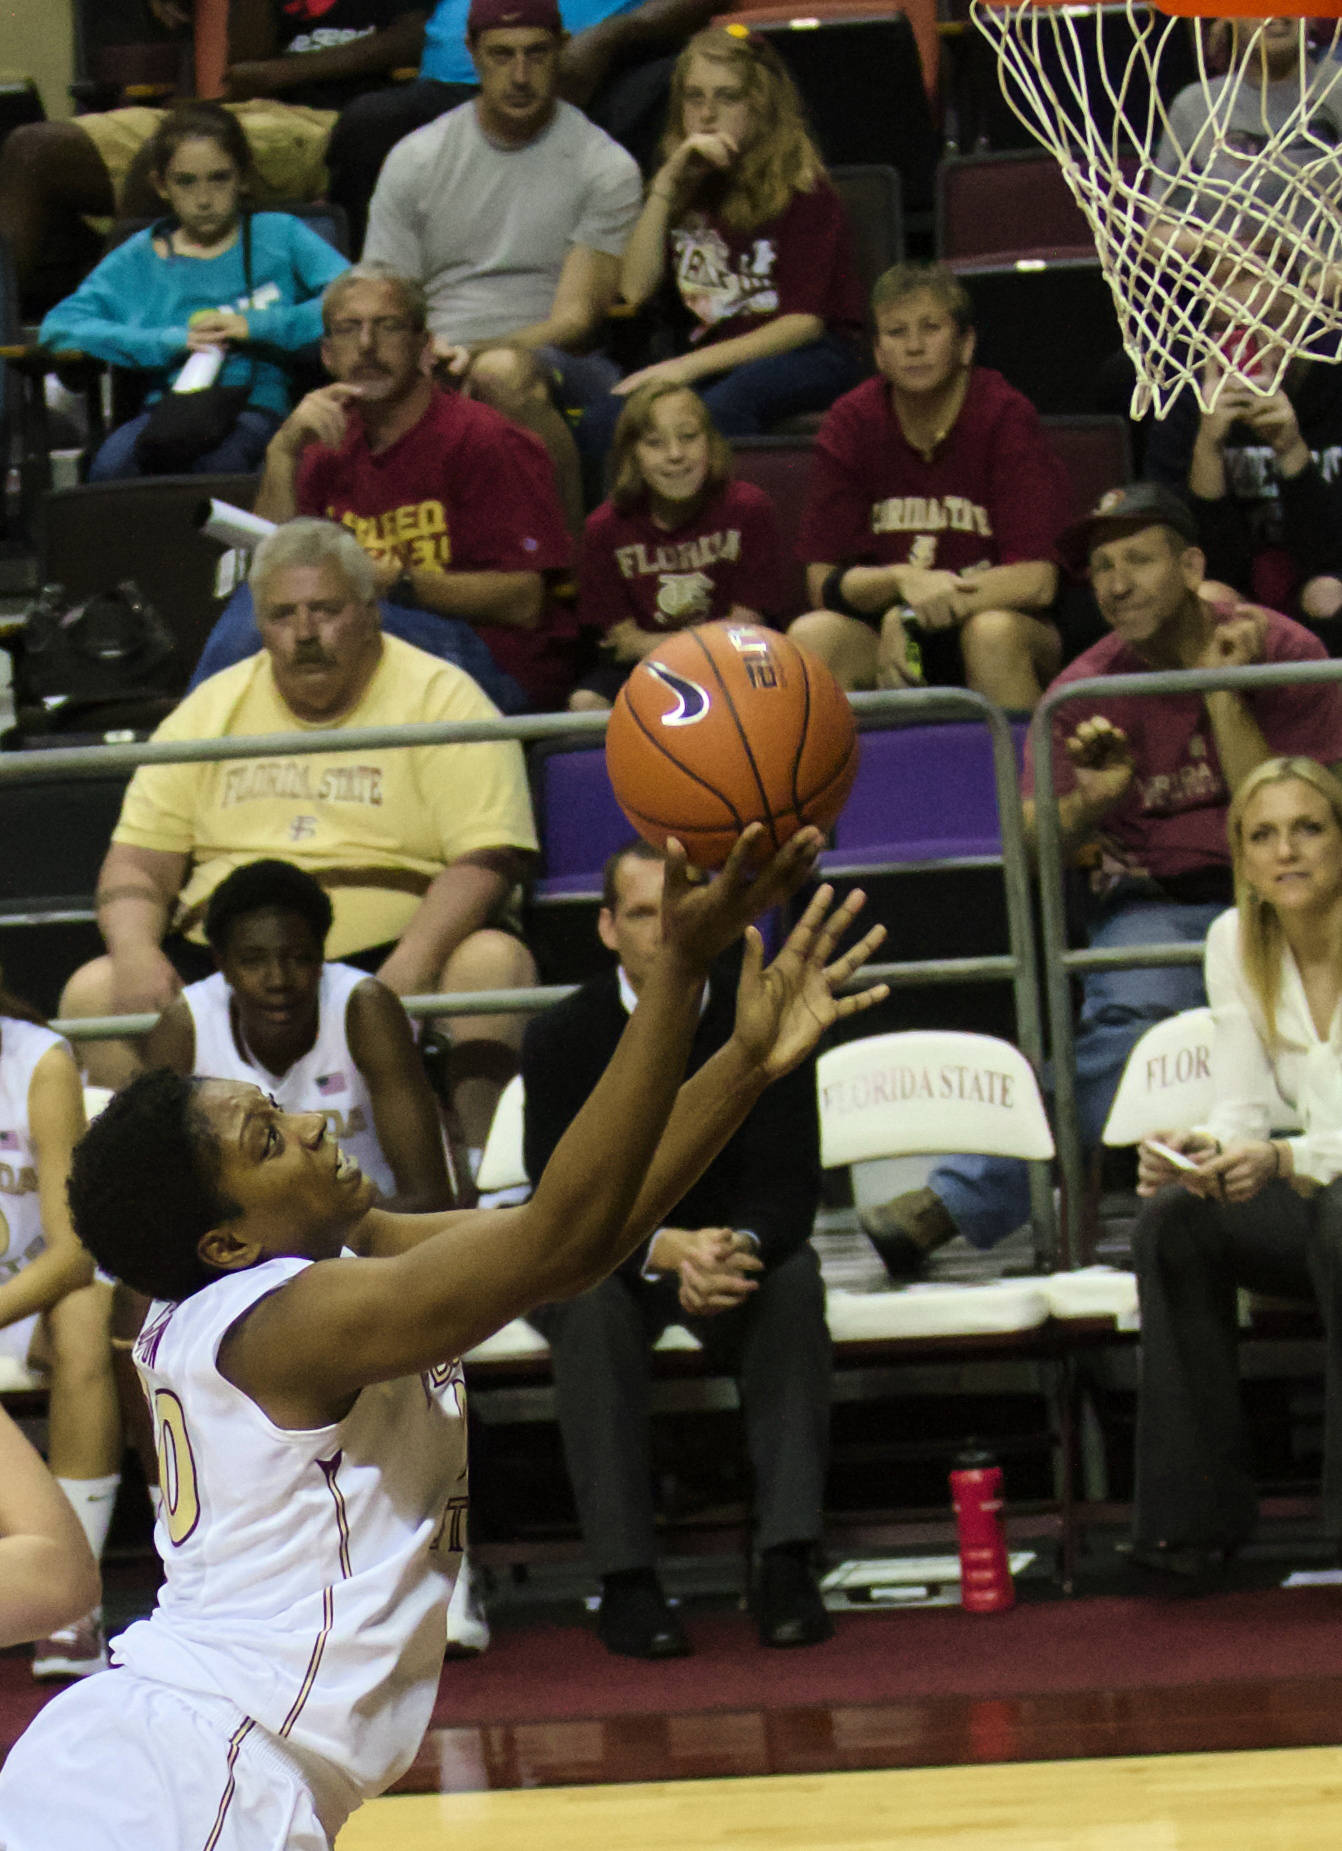 Chasity Clayton (00), FSU vs Samford, 11/11/12. (Photo by Steve Musco)